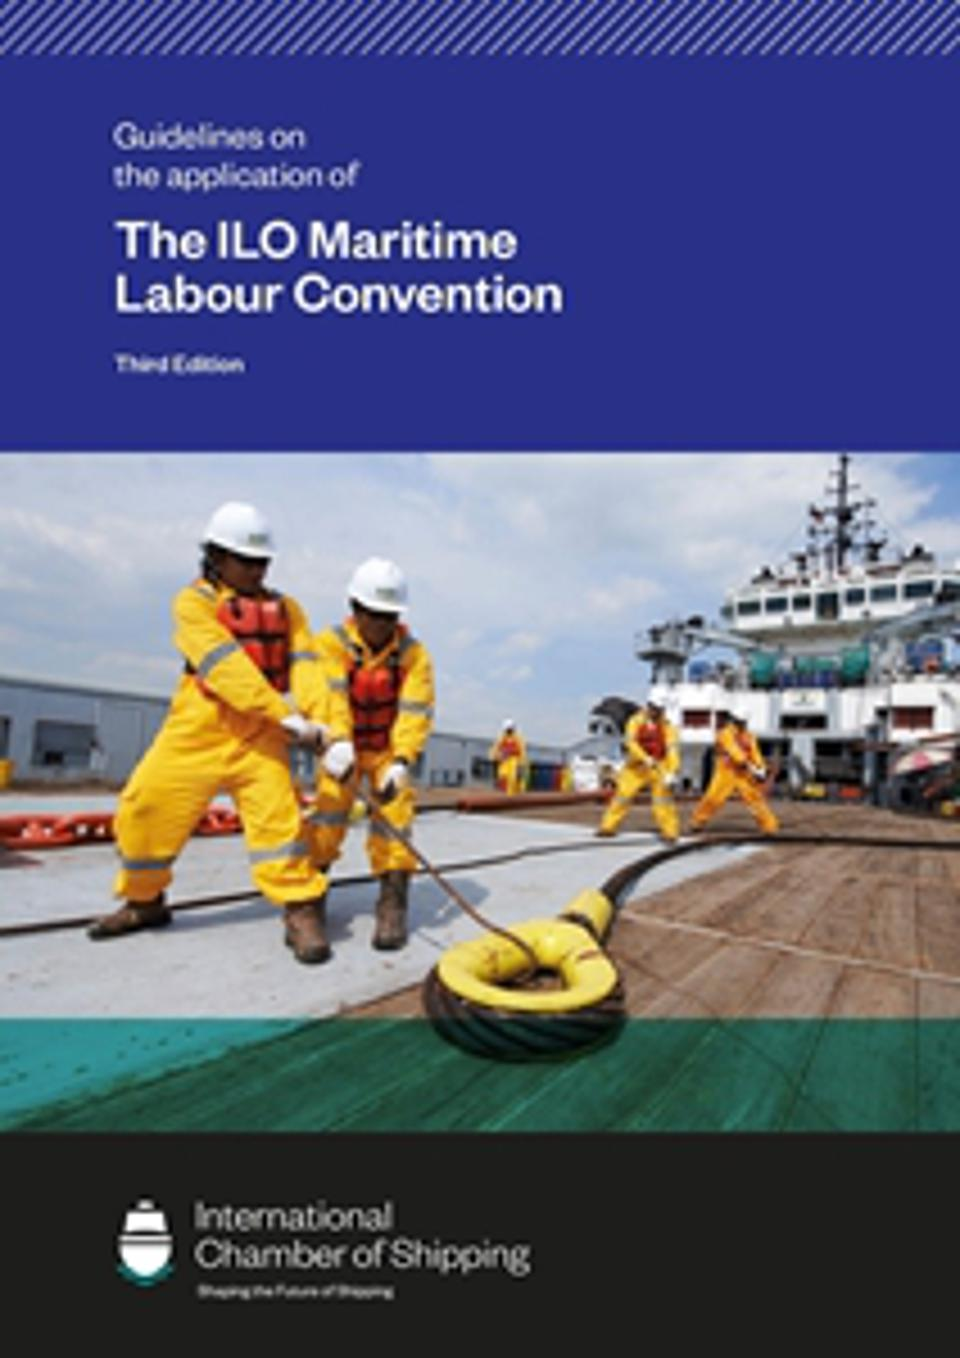 The importance of implementation of the ILO's Maritime Labor Convention is well understood by ship owners